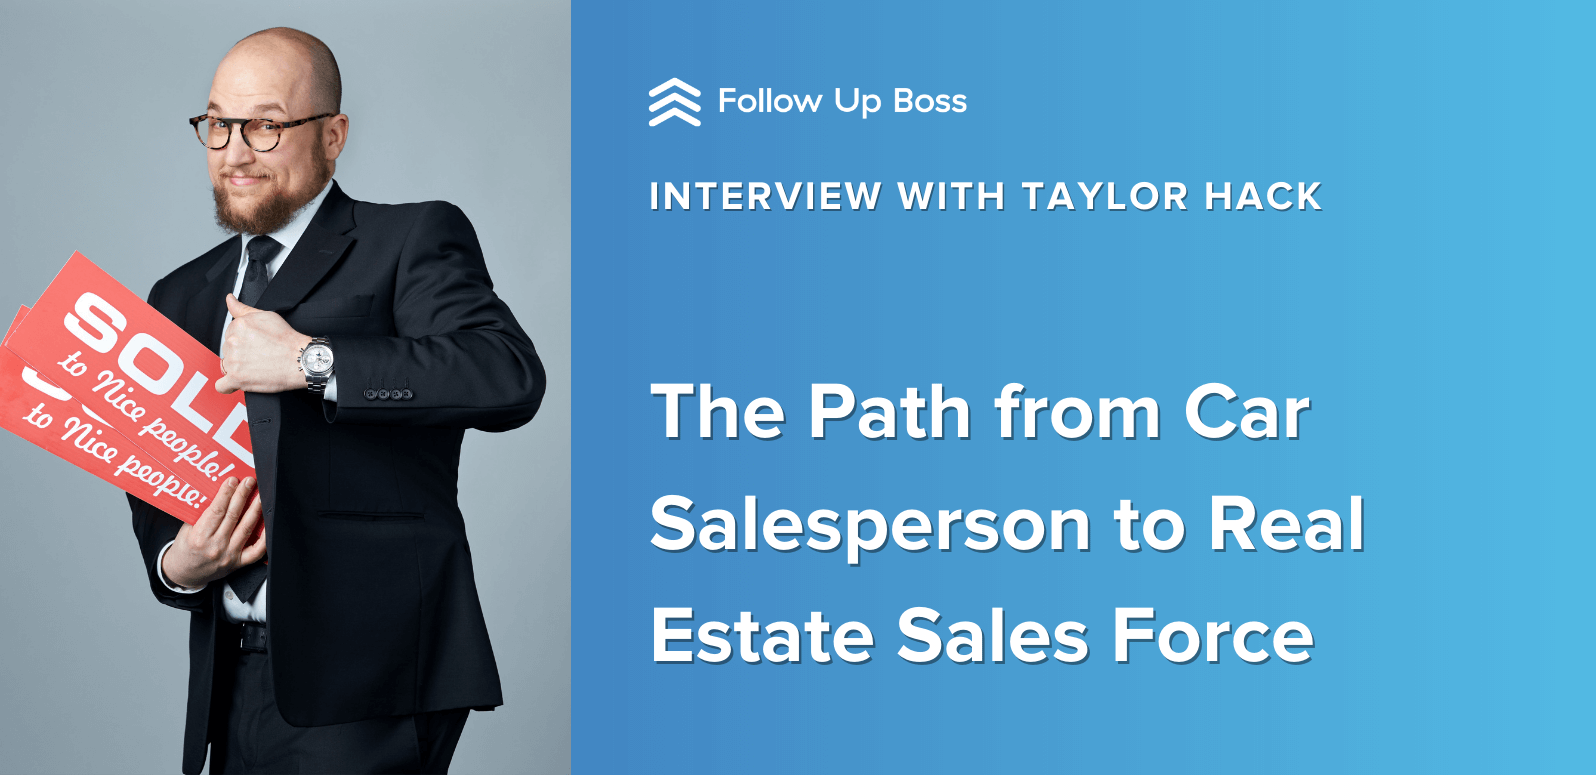 The Path from Car Salesperson to Real Estate Sales Force, Taylor Hack Takes Us from Lone Wolf to Wolf Pack